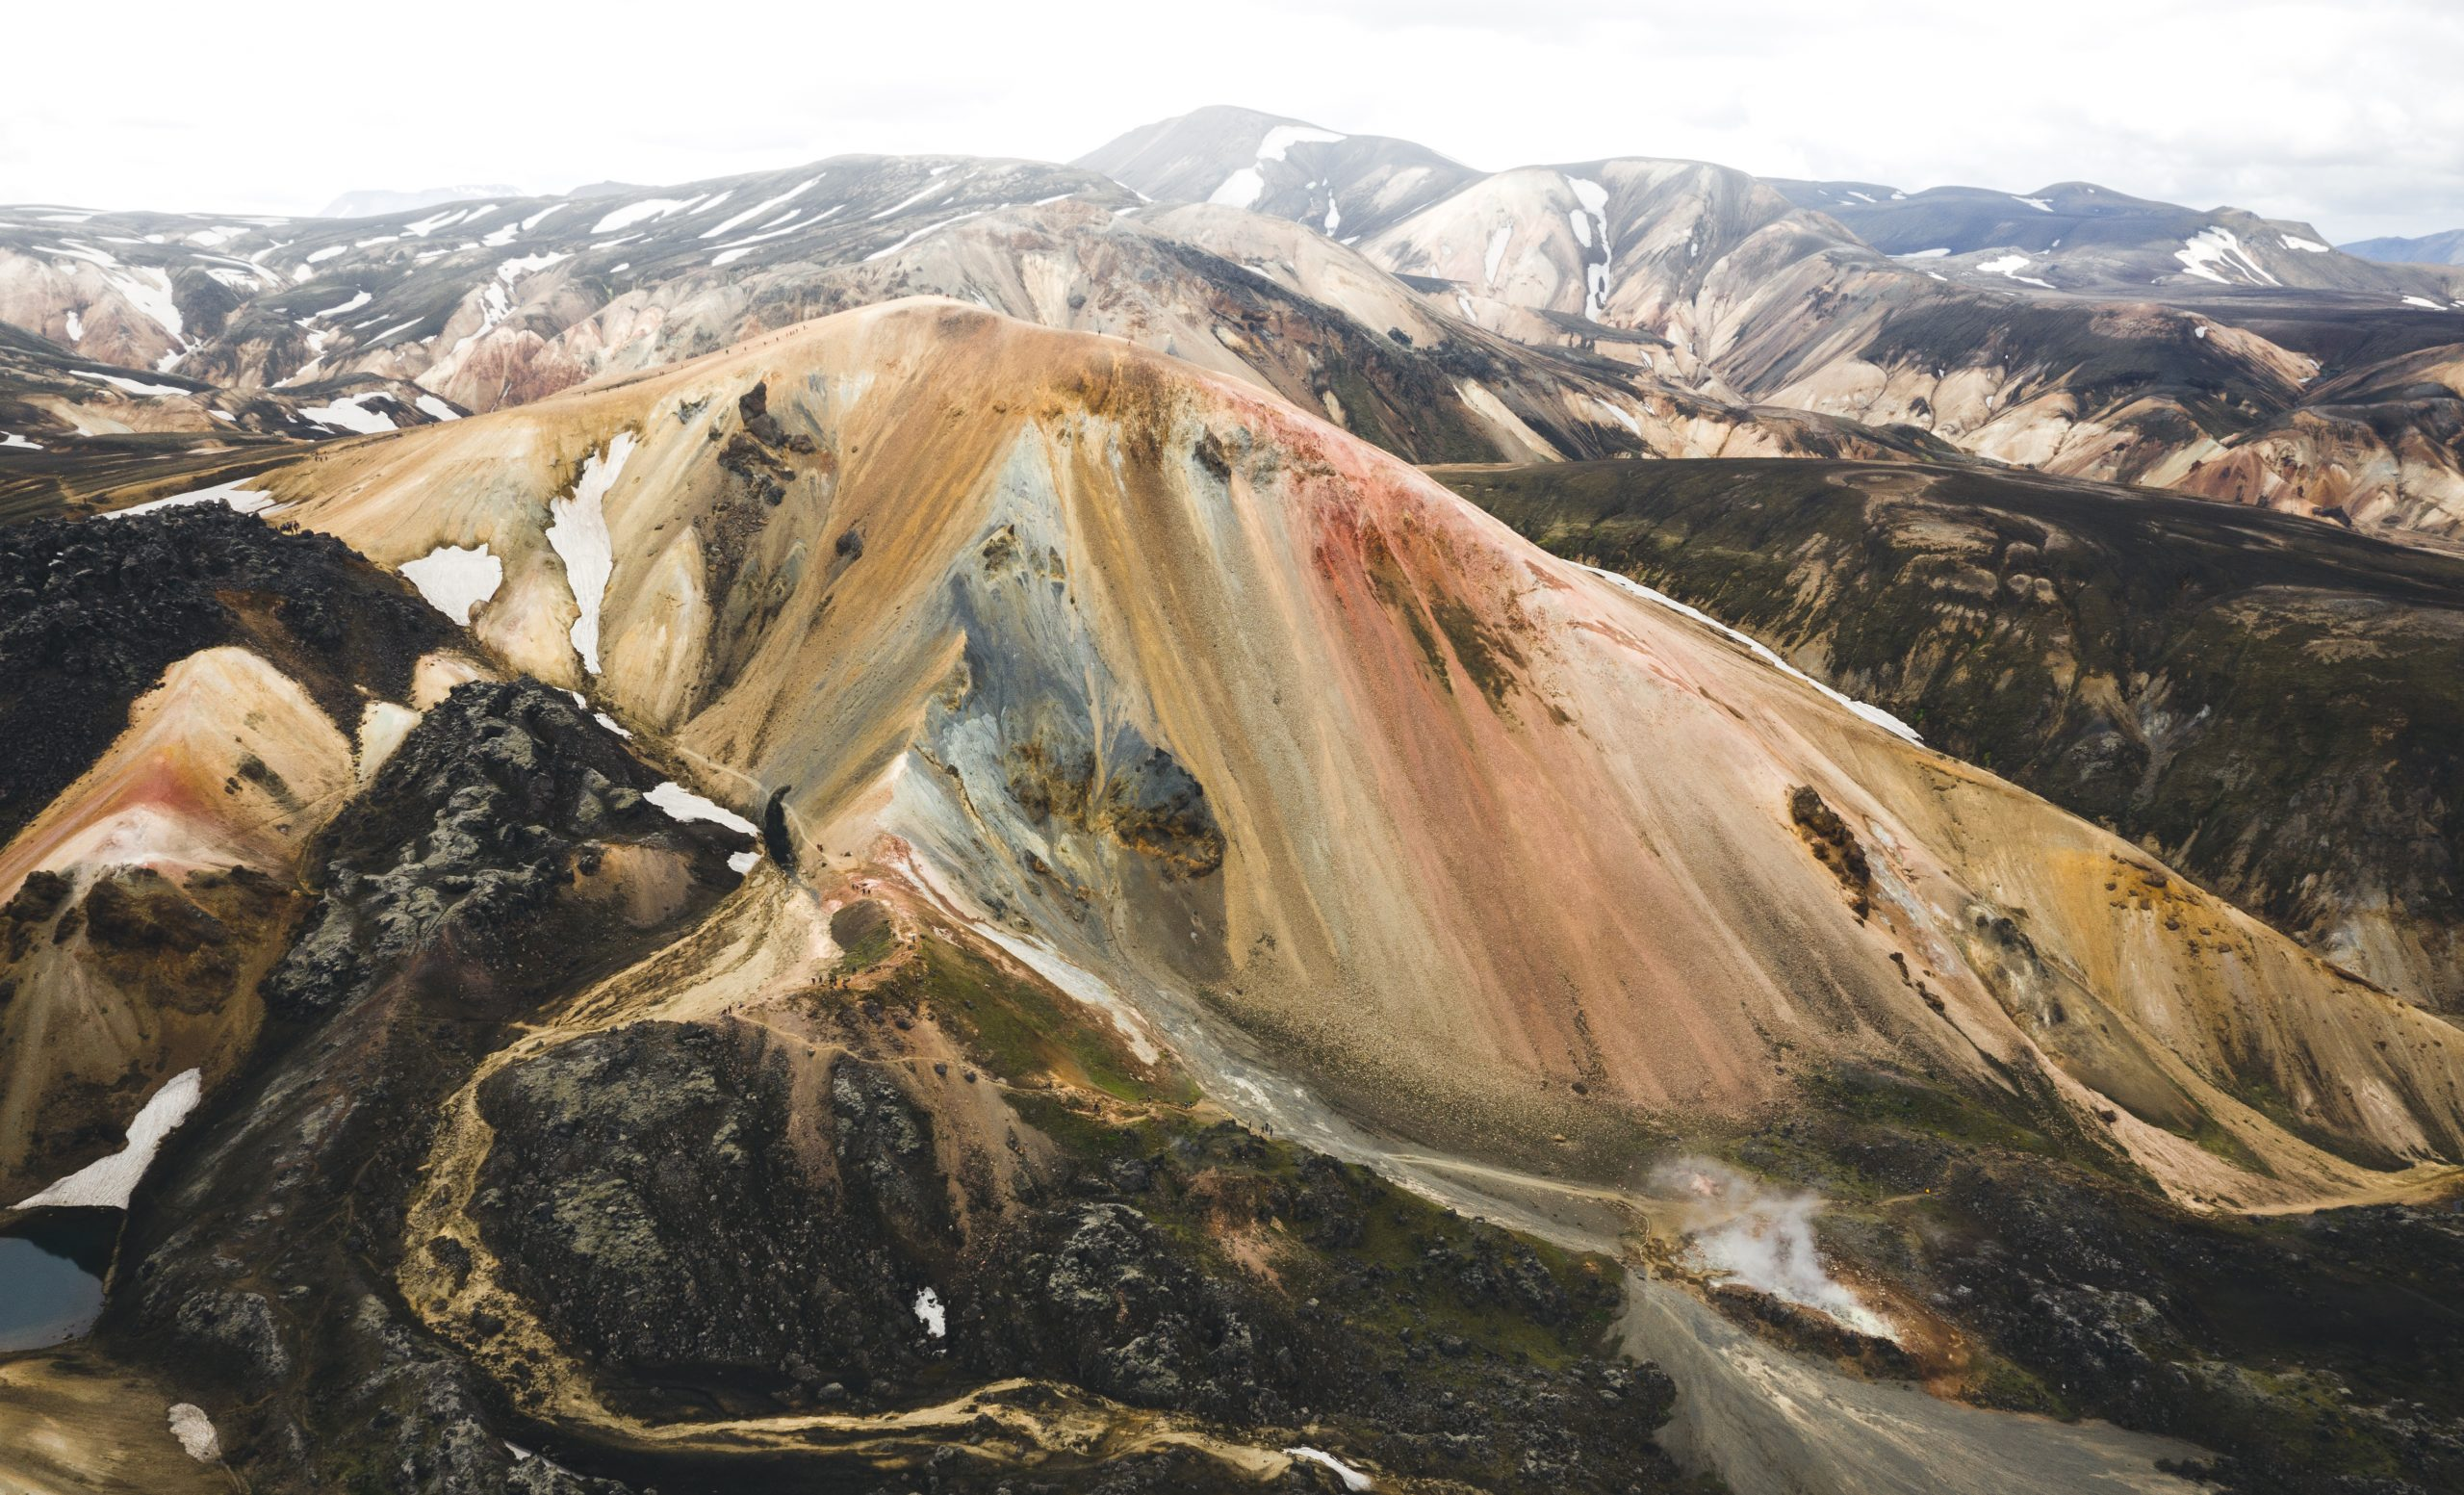 Colourful mountains in the Landmannalaugar Region in Iceland.